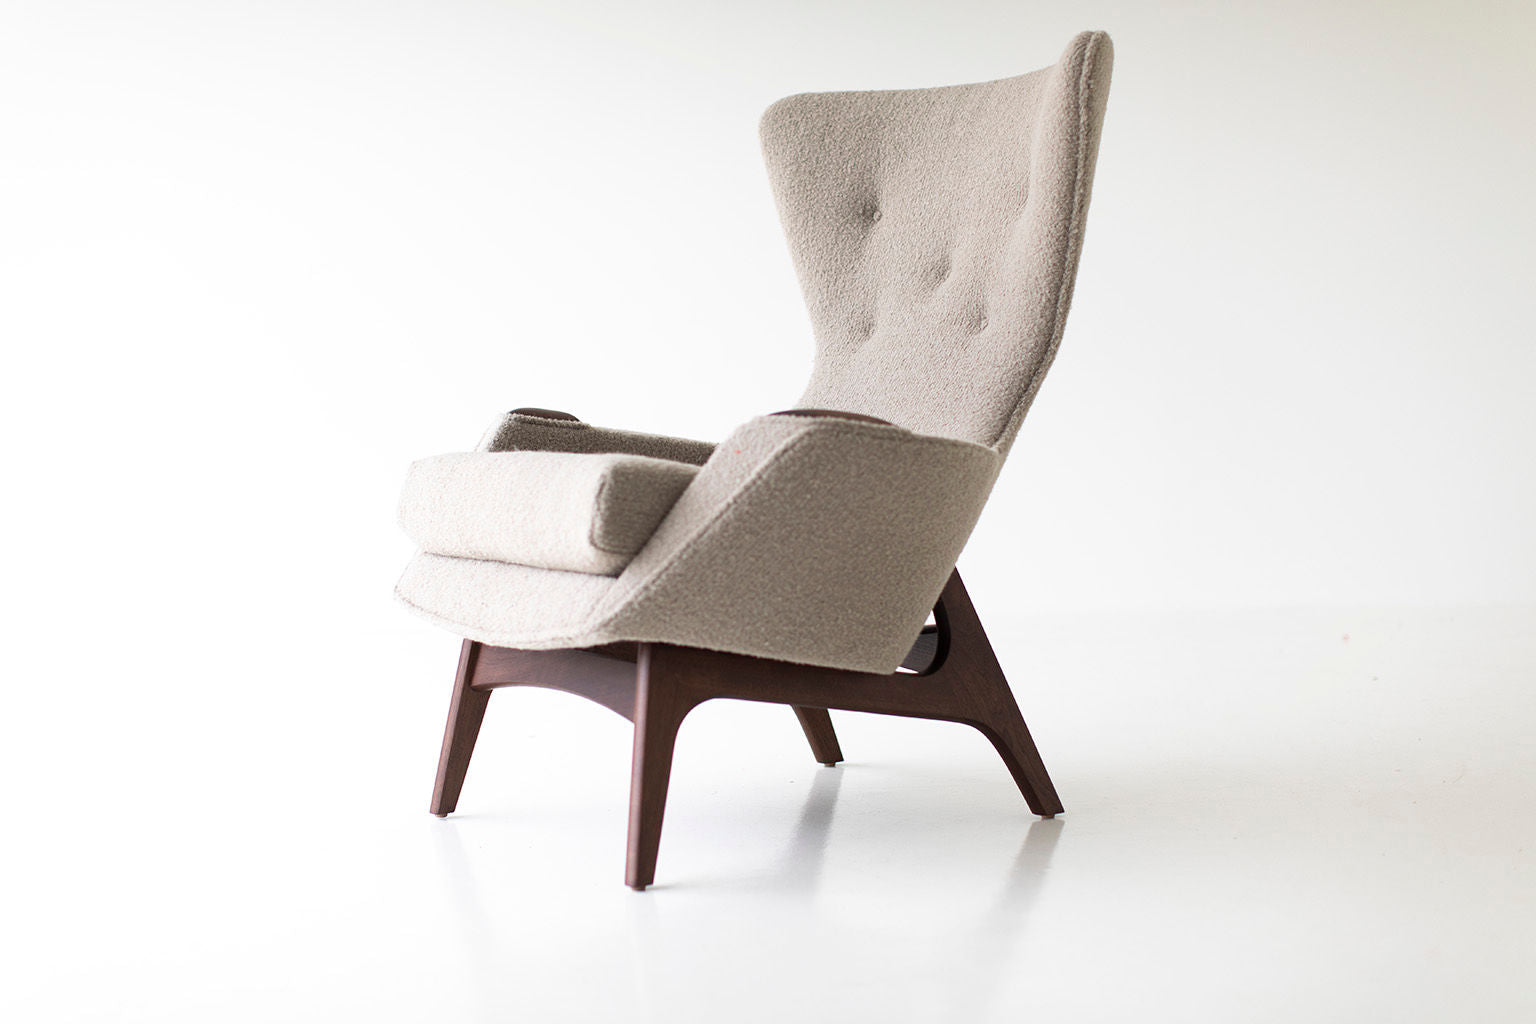 0T3A8982-wing-chair-08